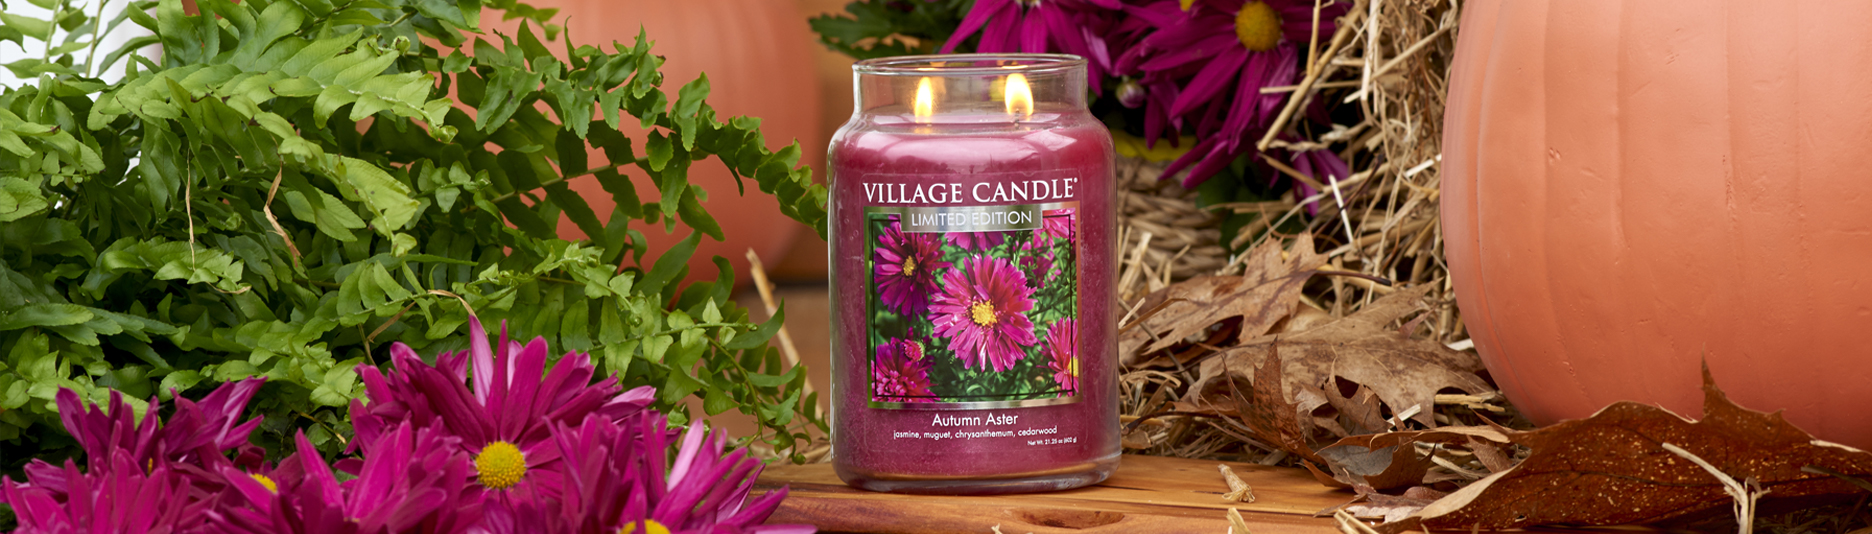 banner village candle